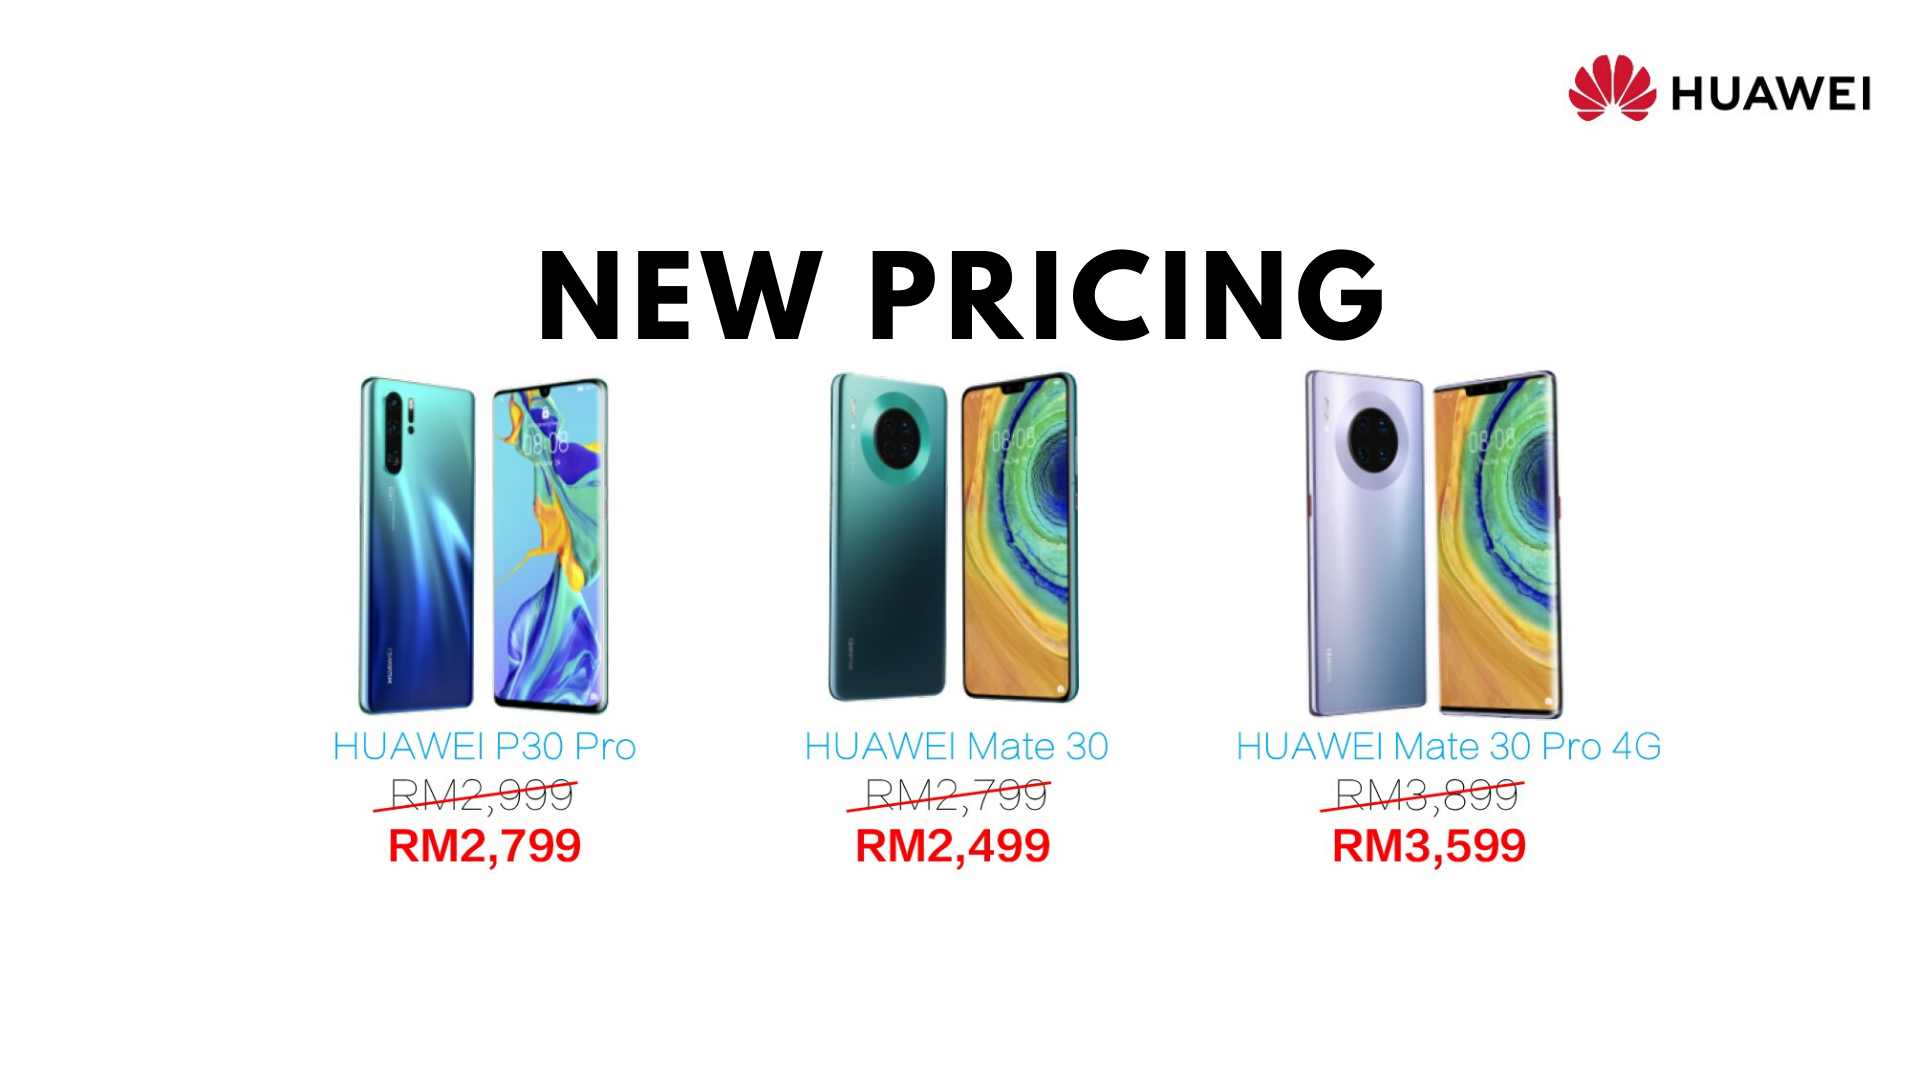 Huawei P30 Pro new pricing